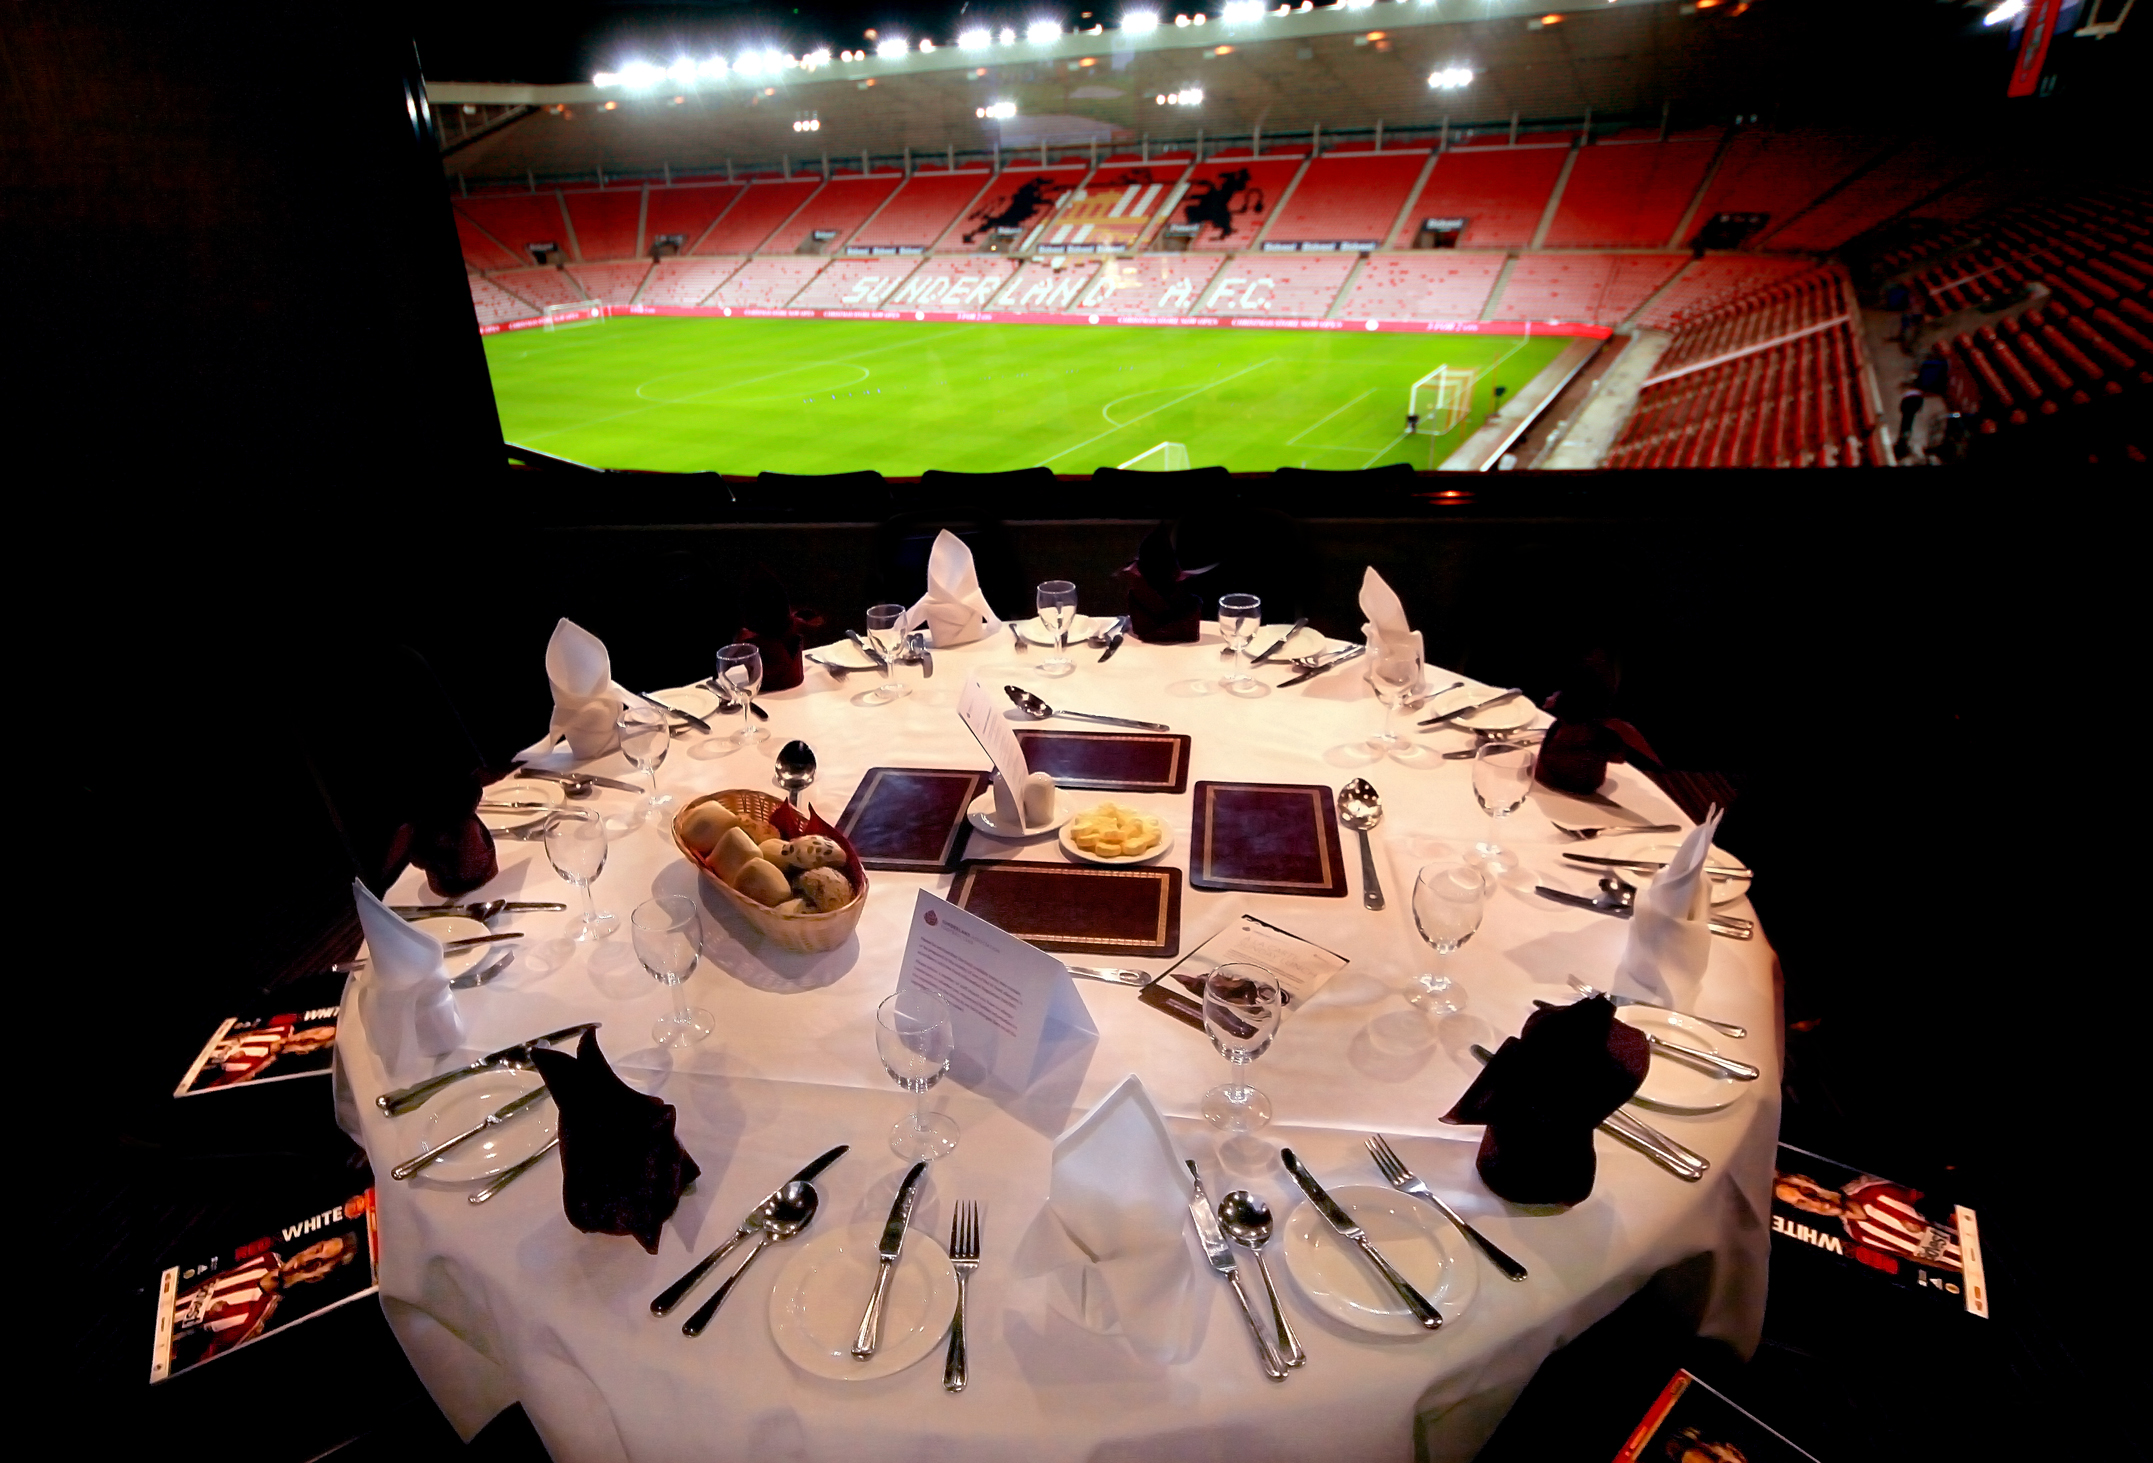 Sunderland Conference Venue - Stadium of Light